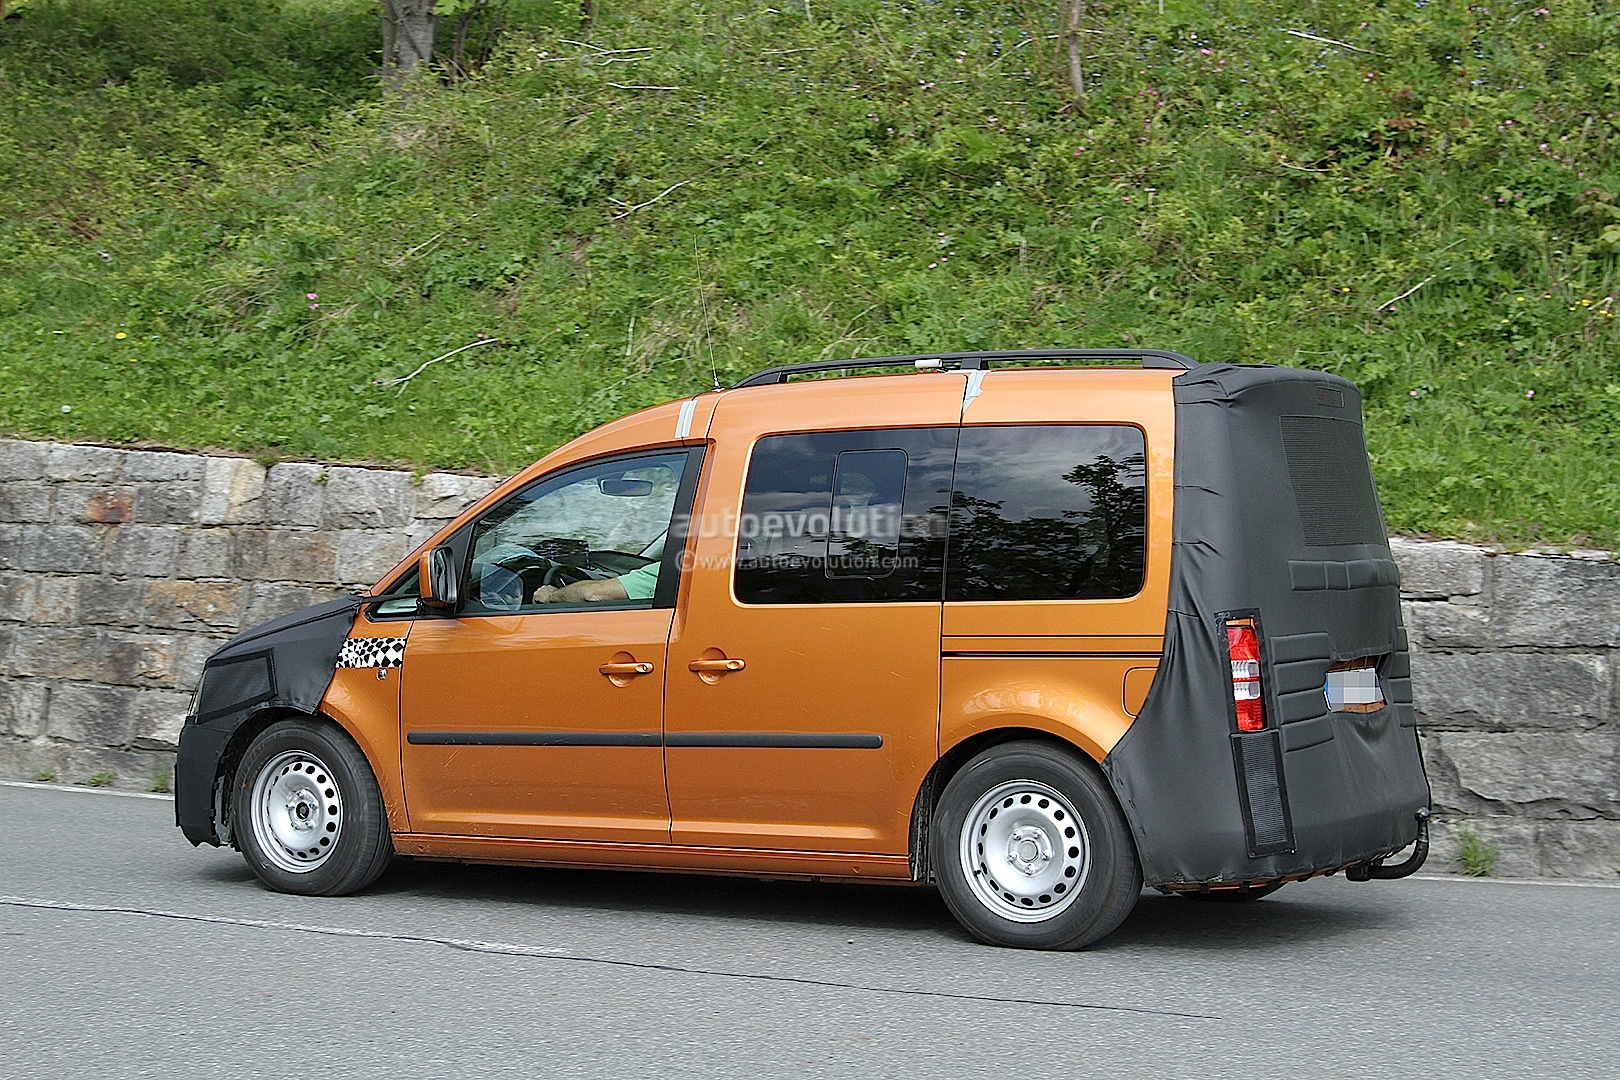 new volkswagen caddy spied testing for 2015 launch. Black Bedroom Furniture Sets. Home Design Ideas